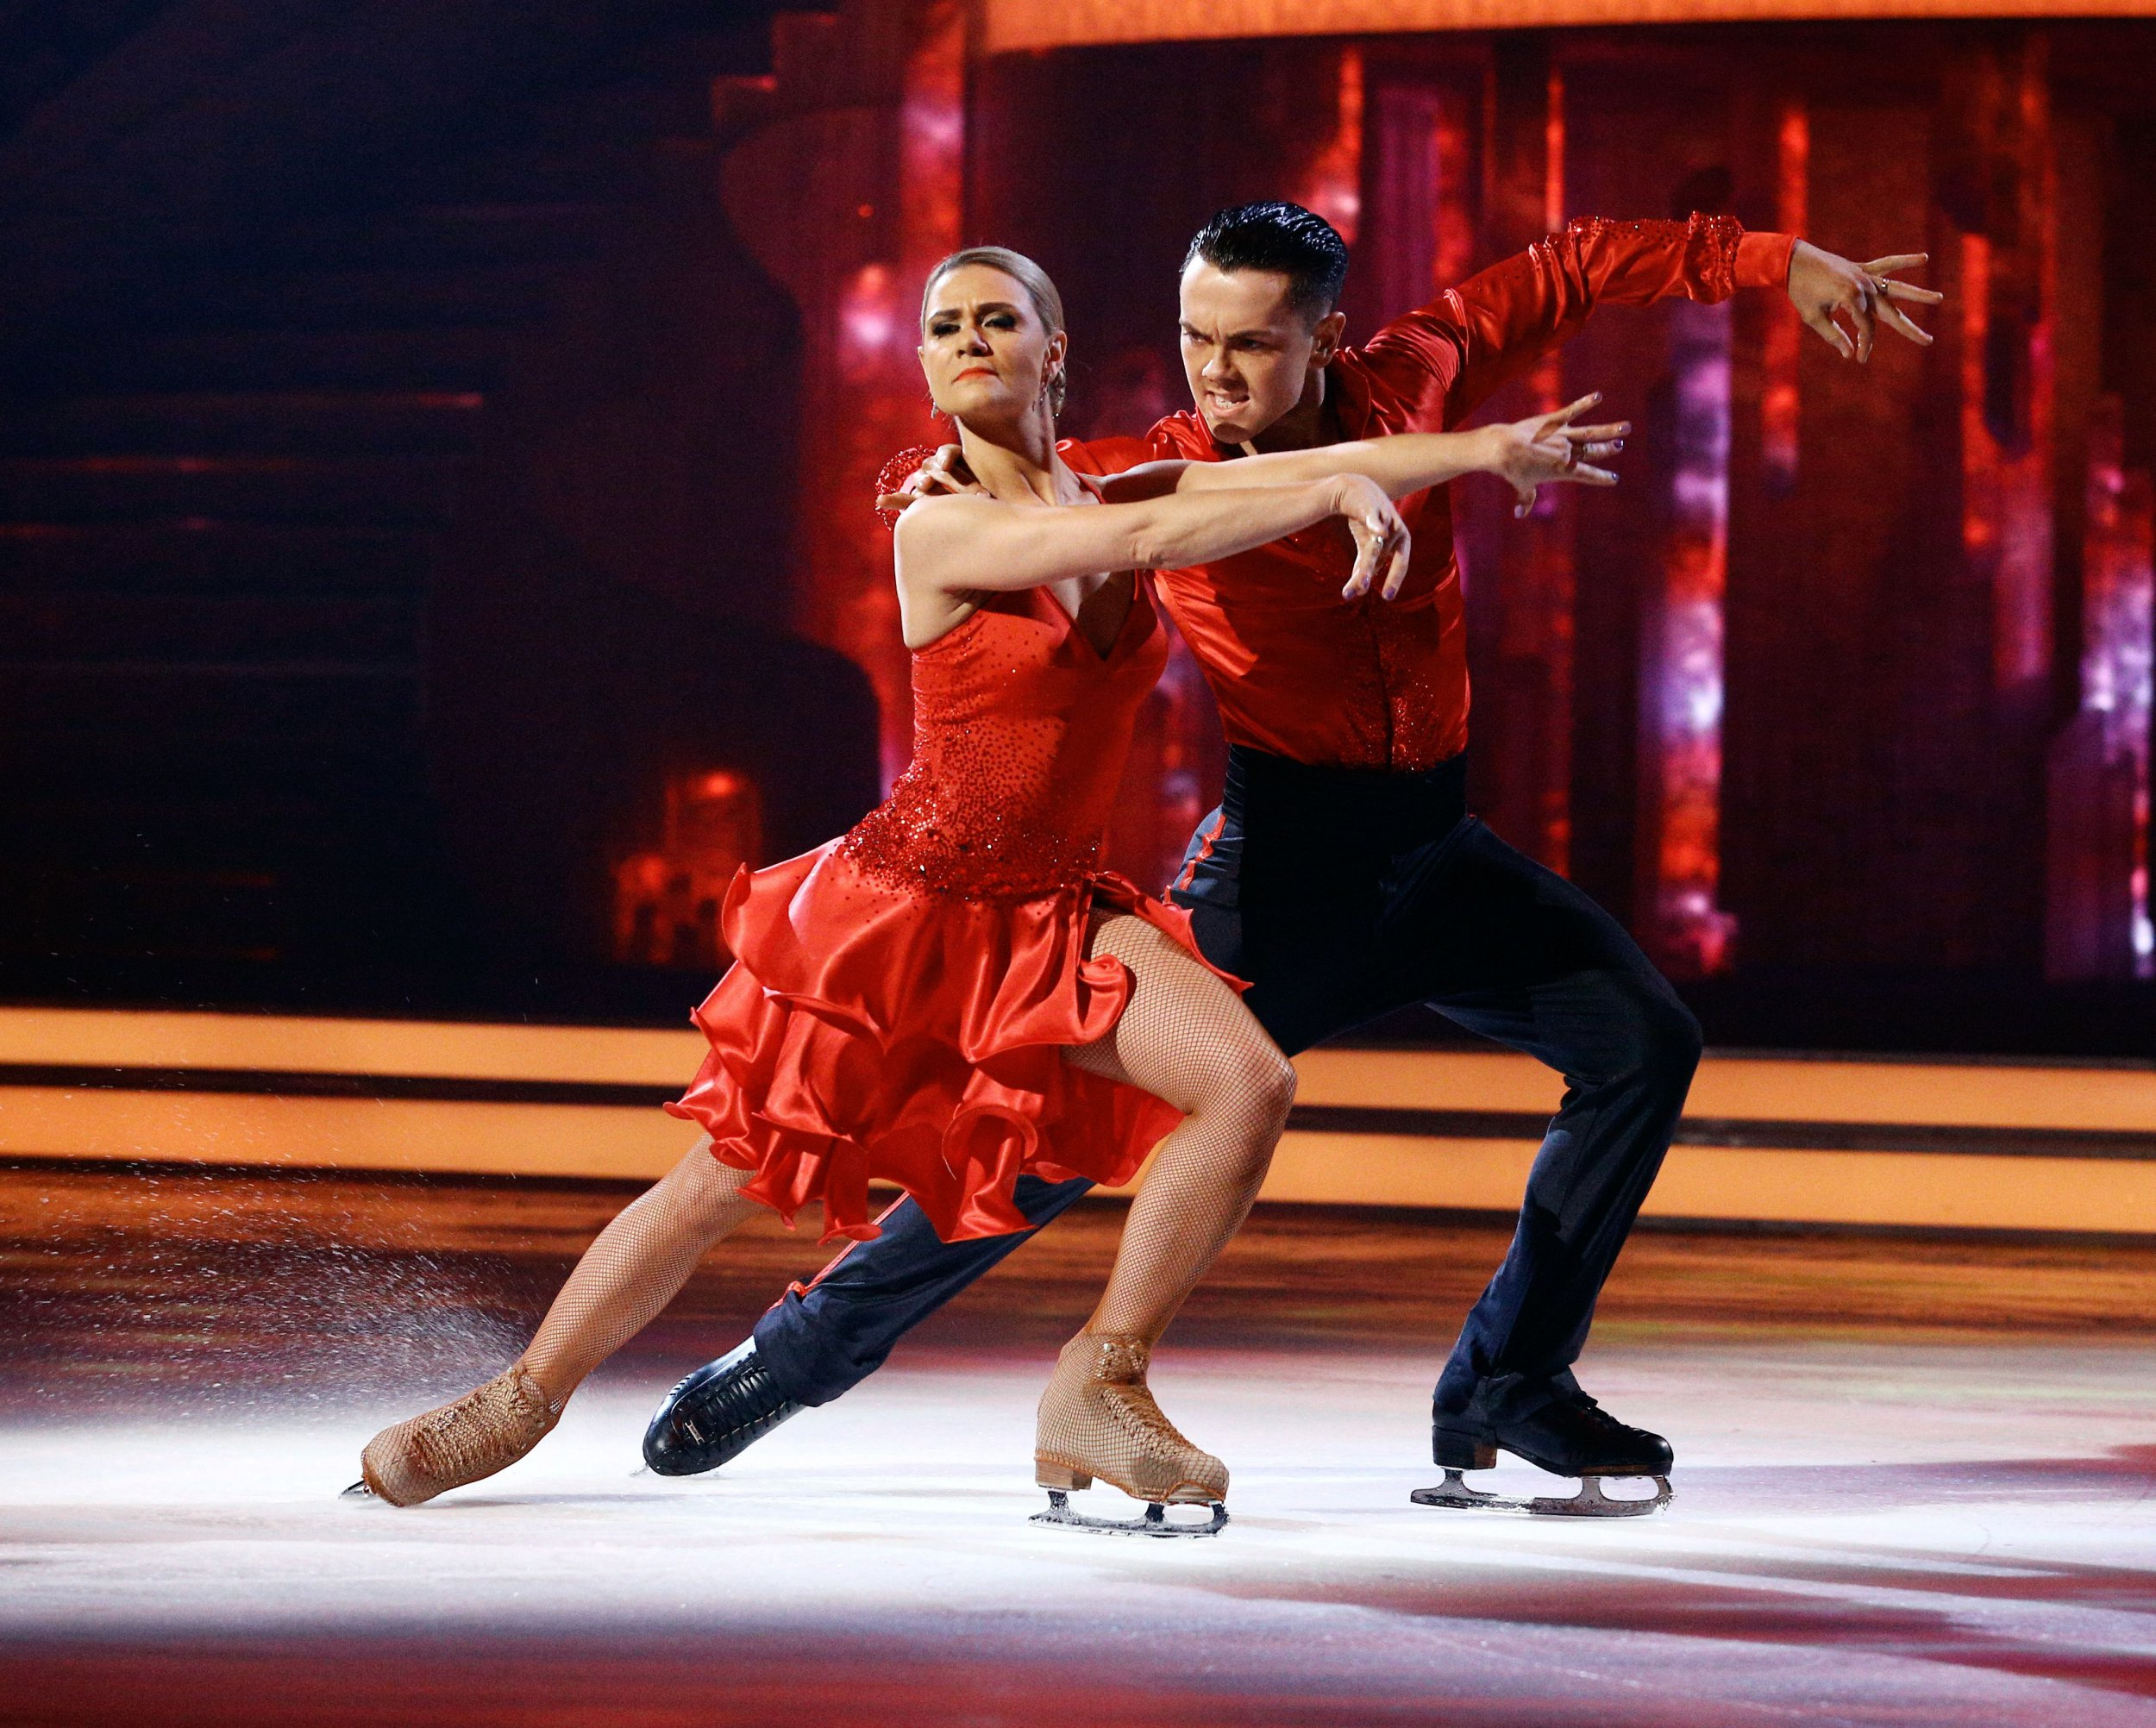 Dancing On Ice champ Ray Quinn says he was turned down for a judging job on the show